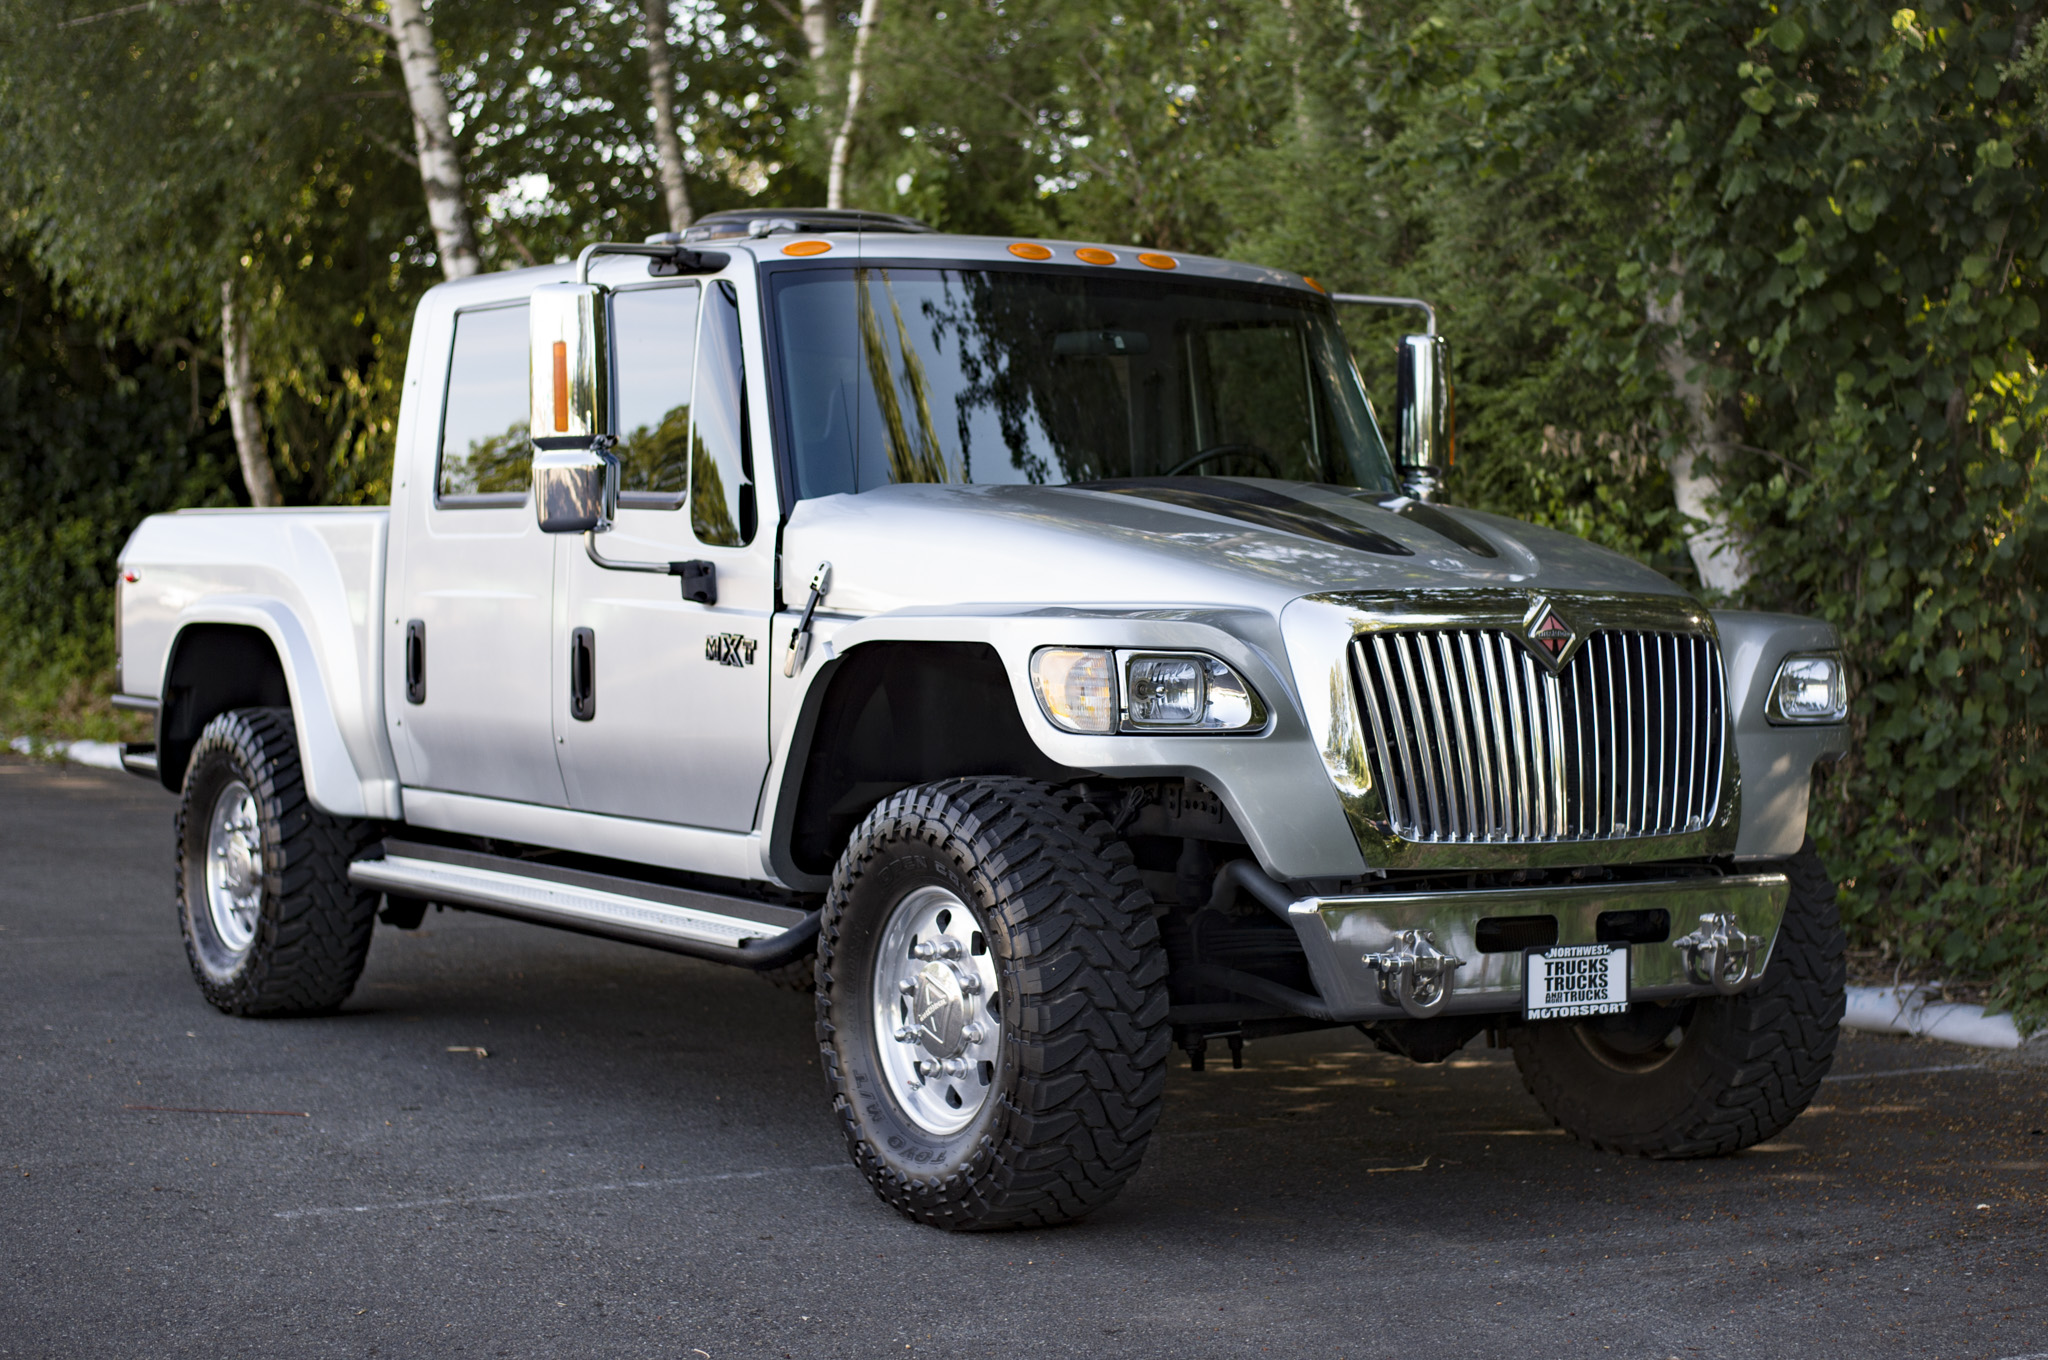 International Mxt For Sale >> The International Mxt The Most Extreme Truck There Is